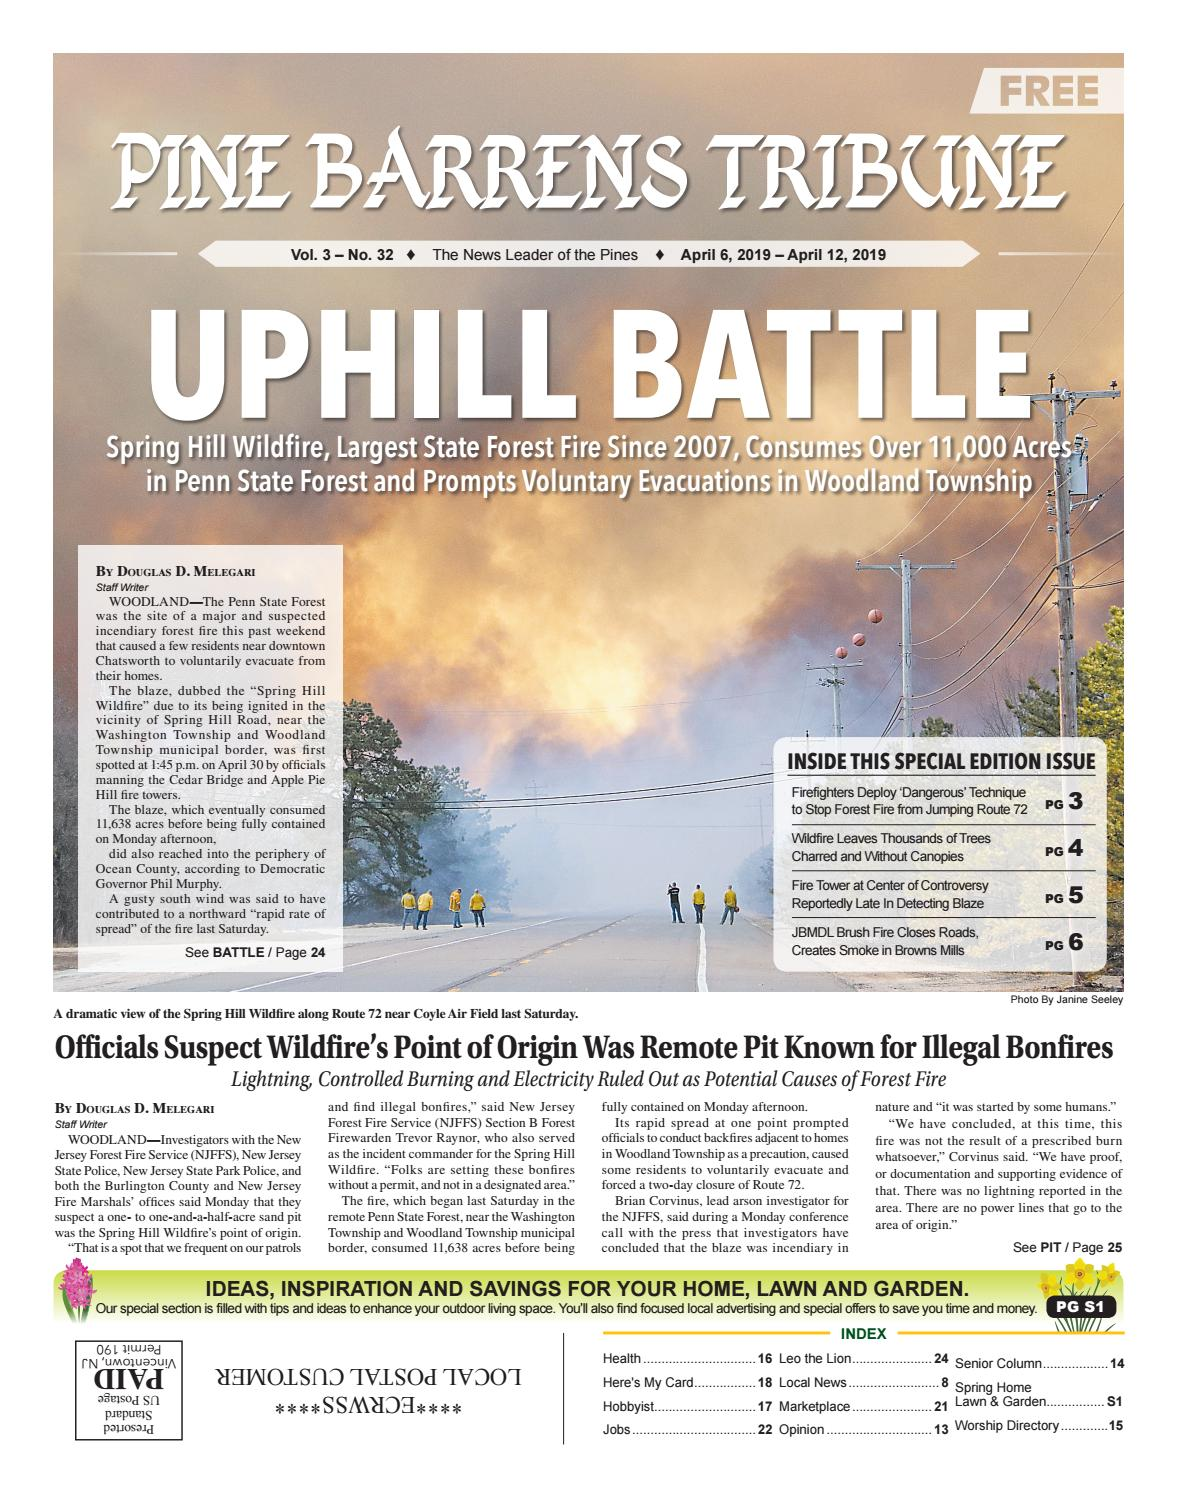 Pine Barrens Tribune Apr  5 -April 12, 2019